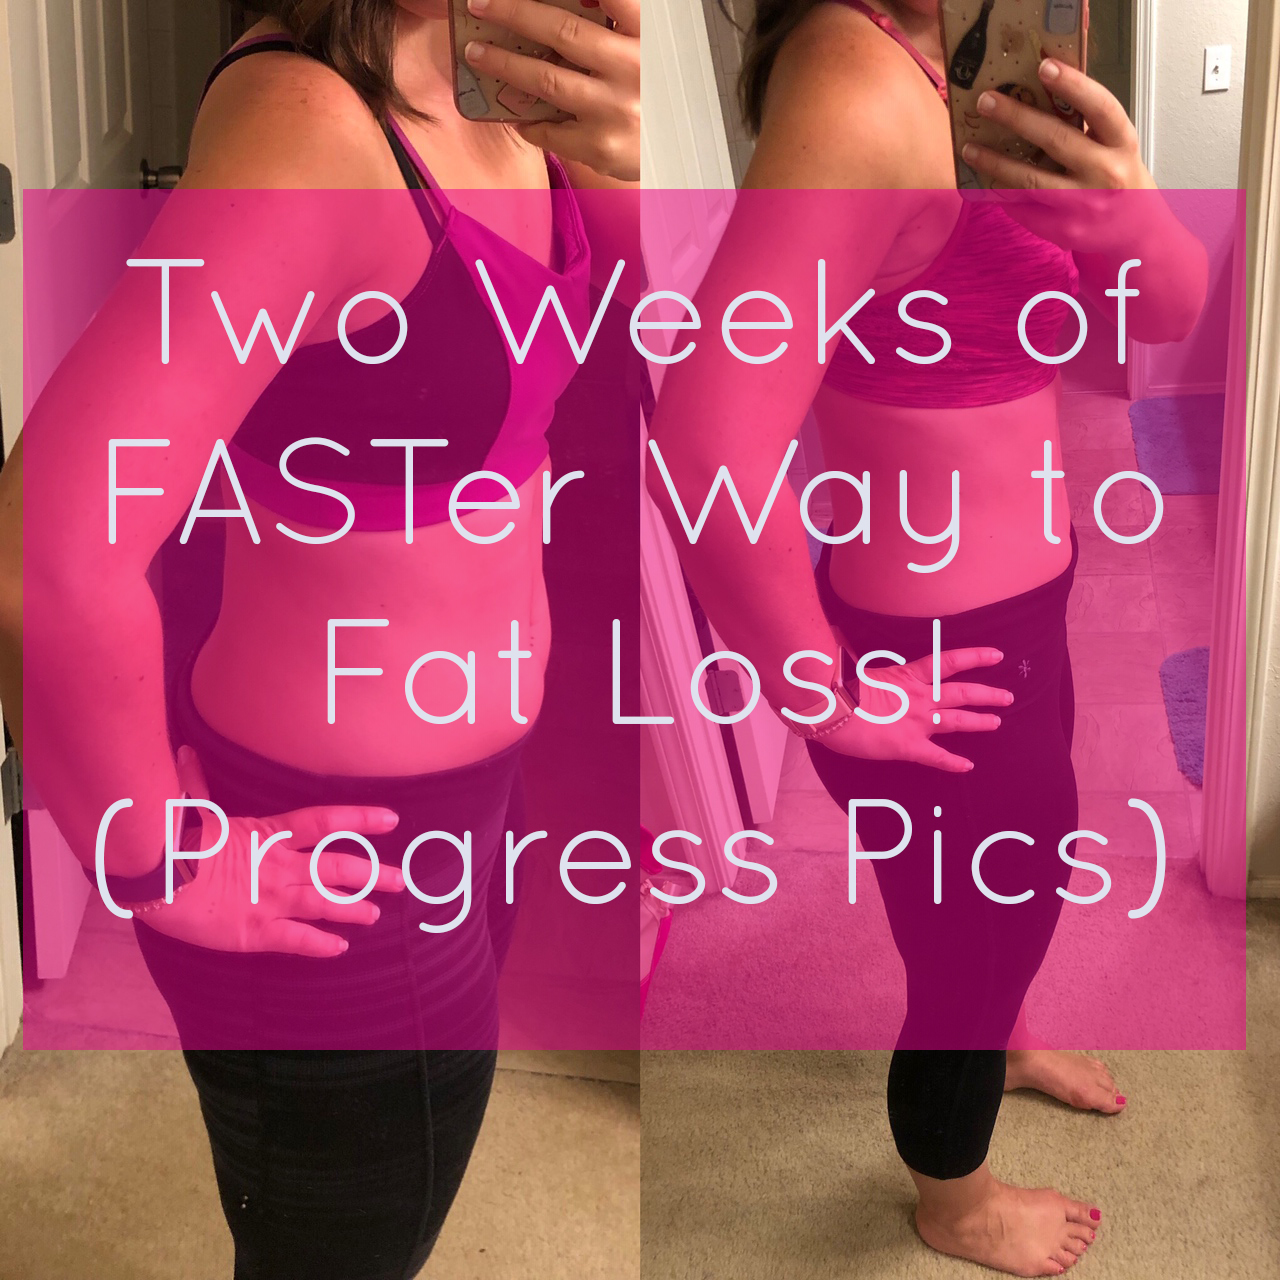 FASTer Way to Fat Loss Week 1-2